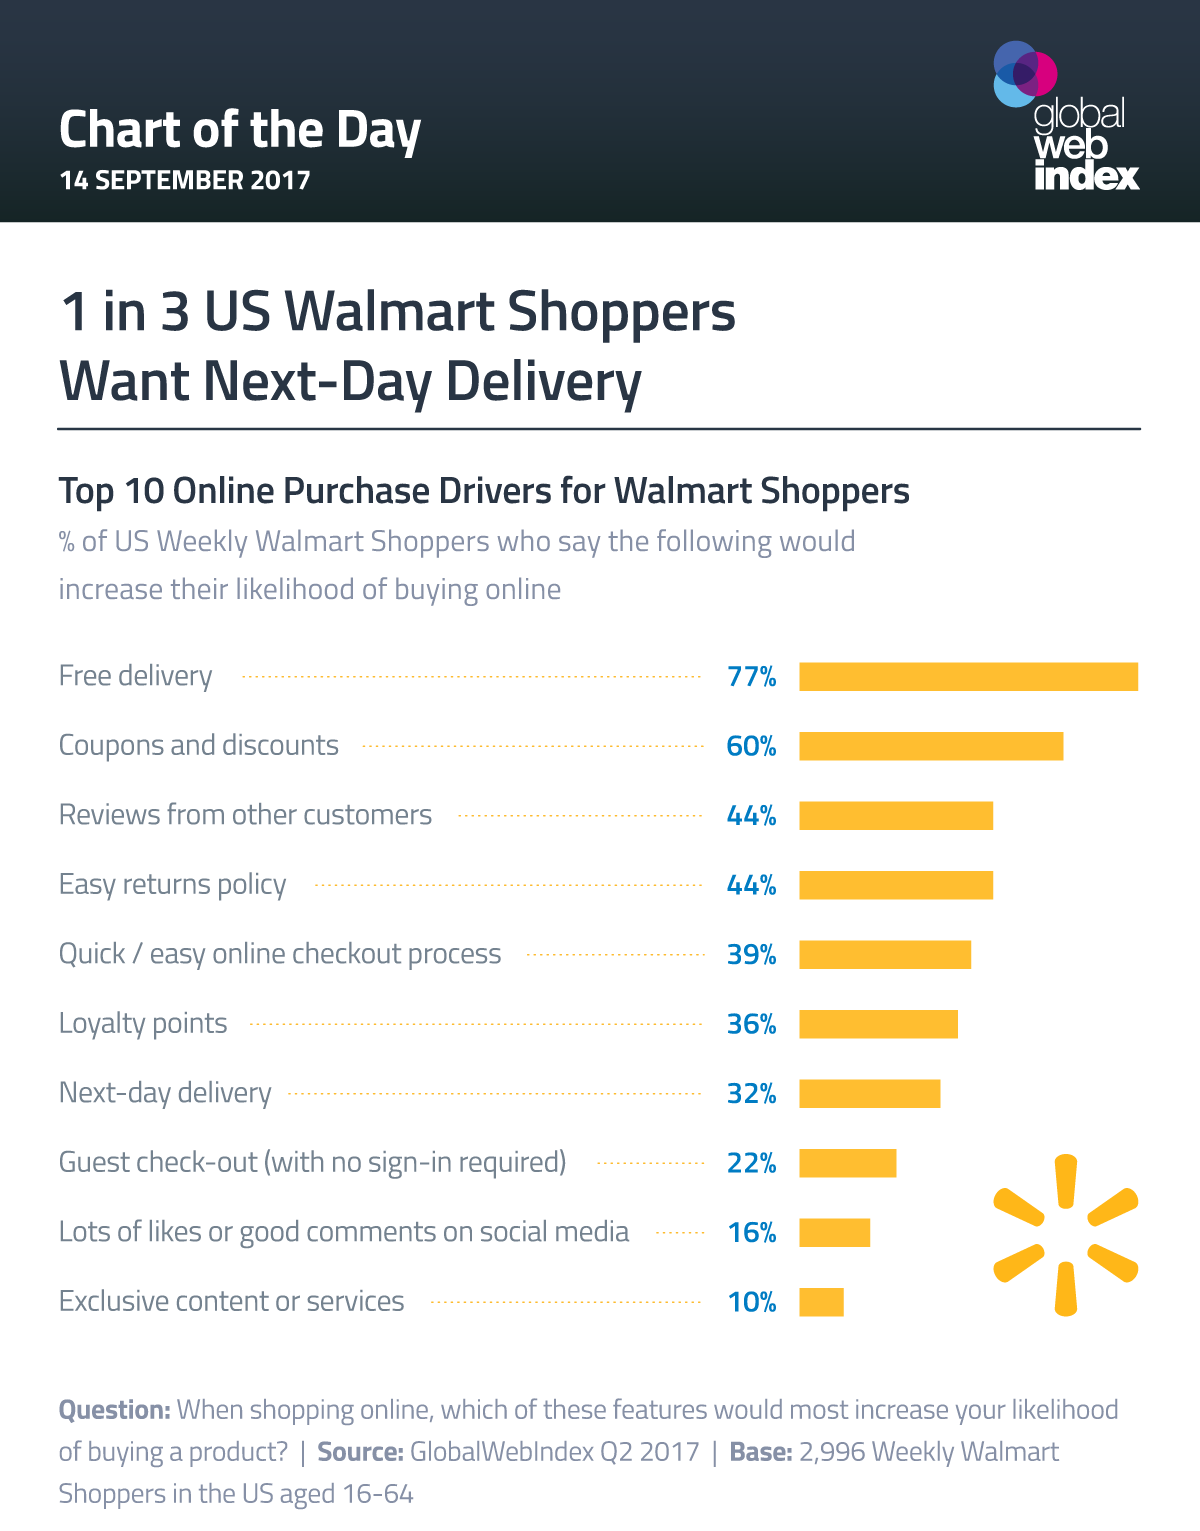 1 in 3 US Walmart Shoppers Want Next-Day Delivery